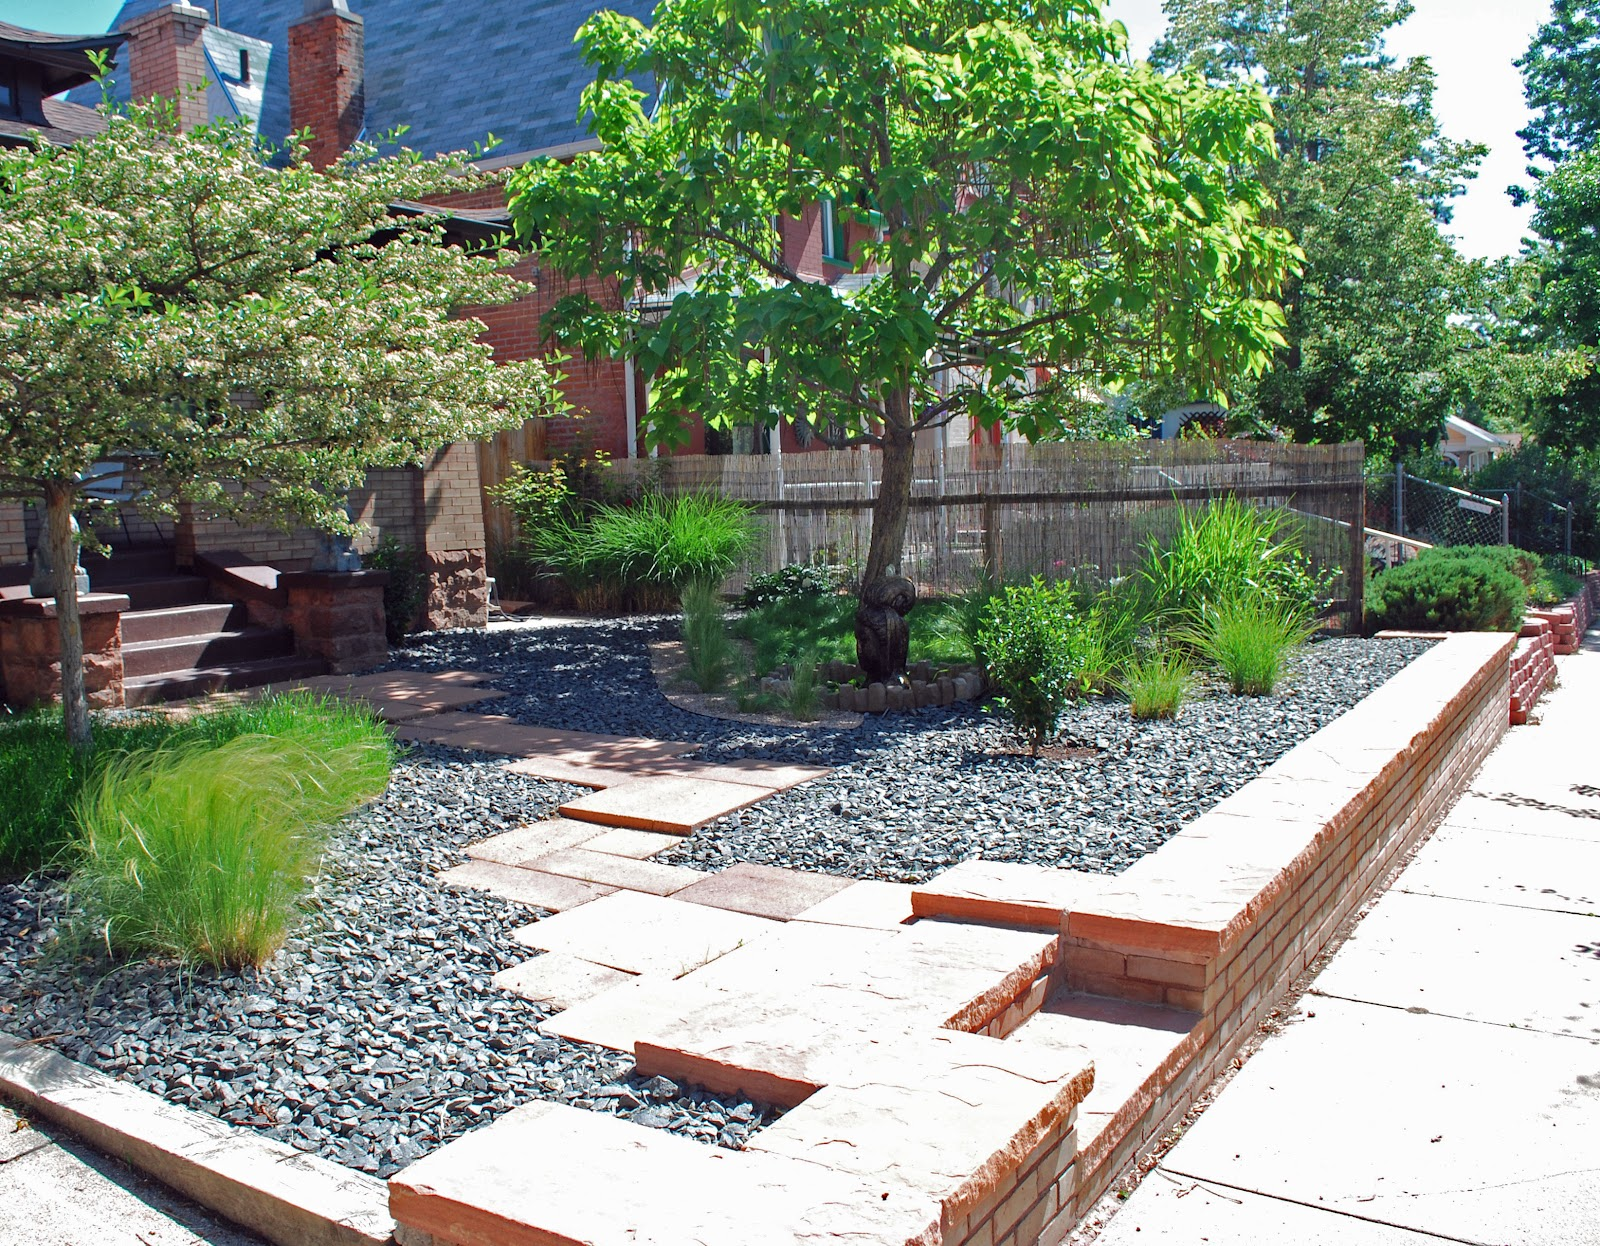 Landscape Design Focus: Low Maintenance